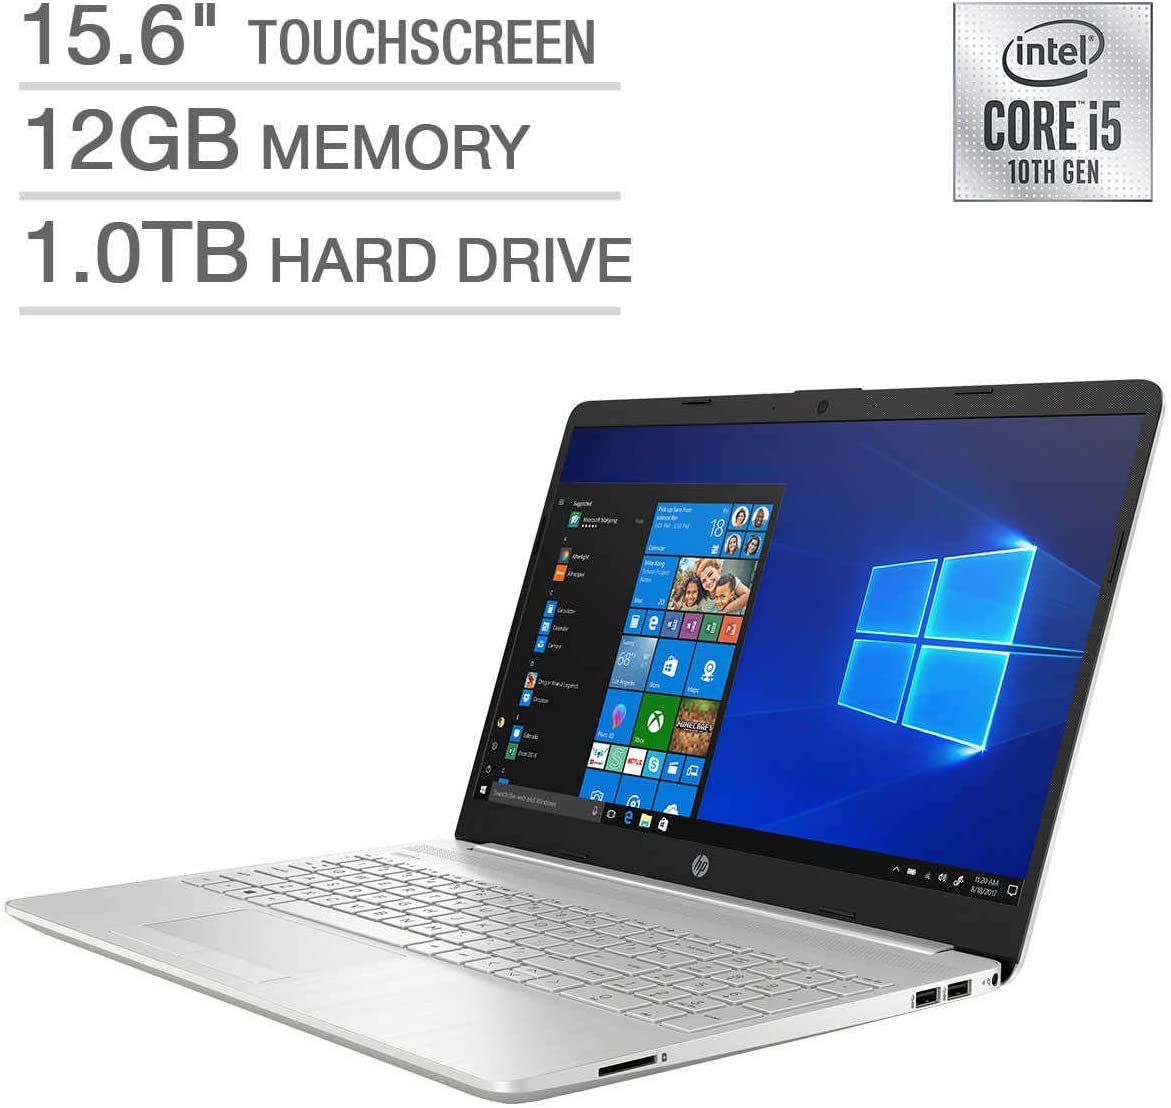 "HP 15.6"" Touchscreen Laptop - 10 Gen Intel i5-1035G1 12GB SDRAM 1.0TB 5400RPM SATA Hard Drive"